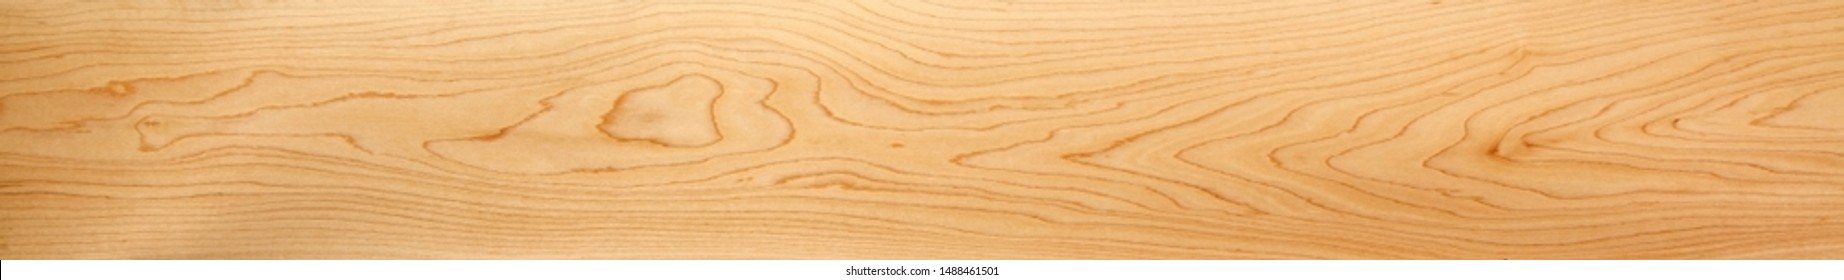 Perfect, very long & wide, wood panorama for banners, design and headers - in beautiful patterns of natural wooden grain.